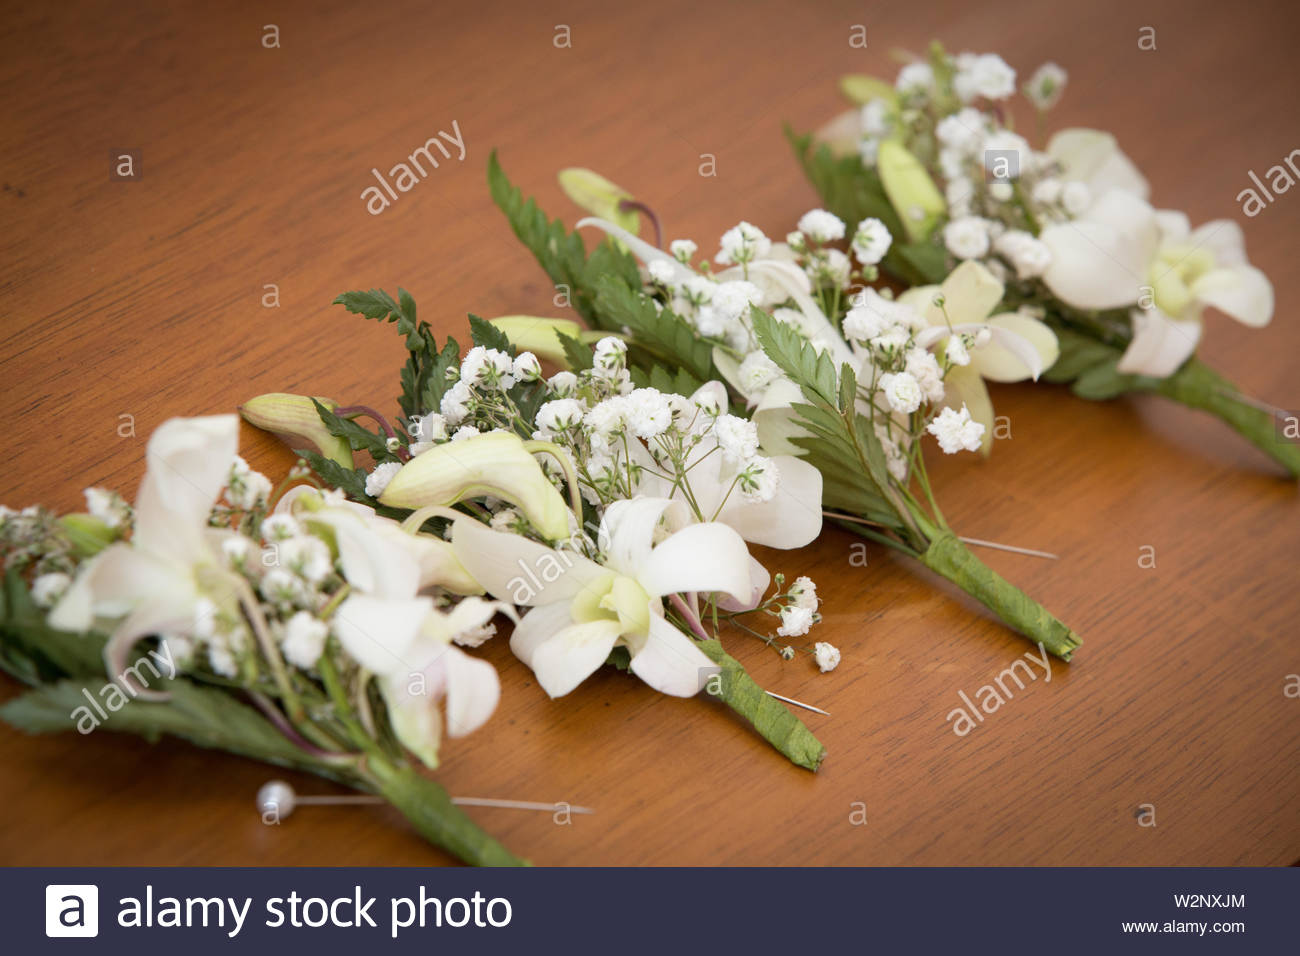 Best men boutonniere on a wooden table .  Wedding boutonniere detail shot. Groomsman concept. Beautiful white flowers bloomed boutonniere. Stock Photo